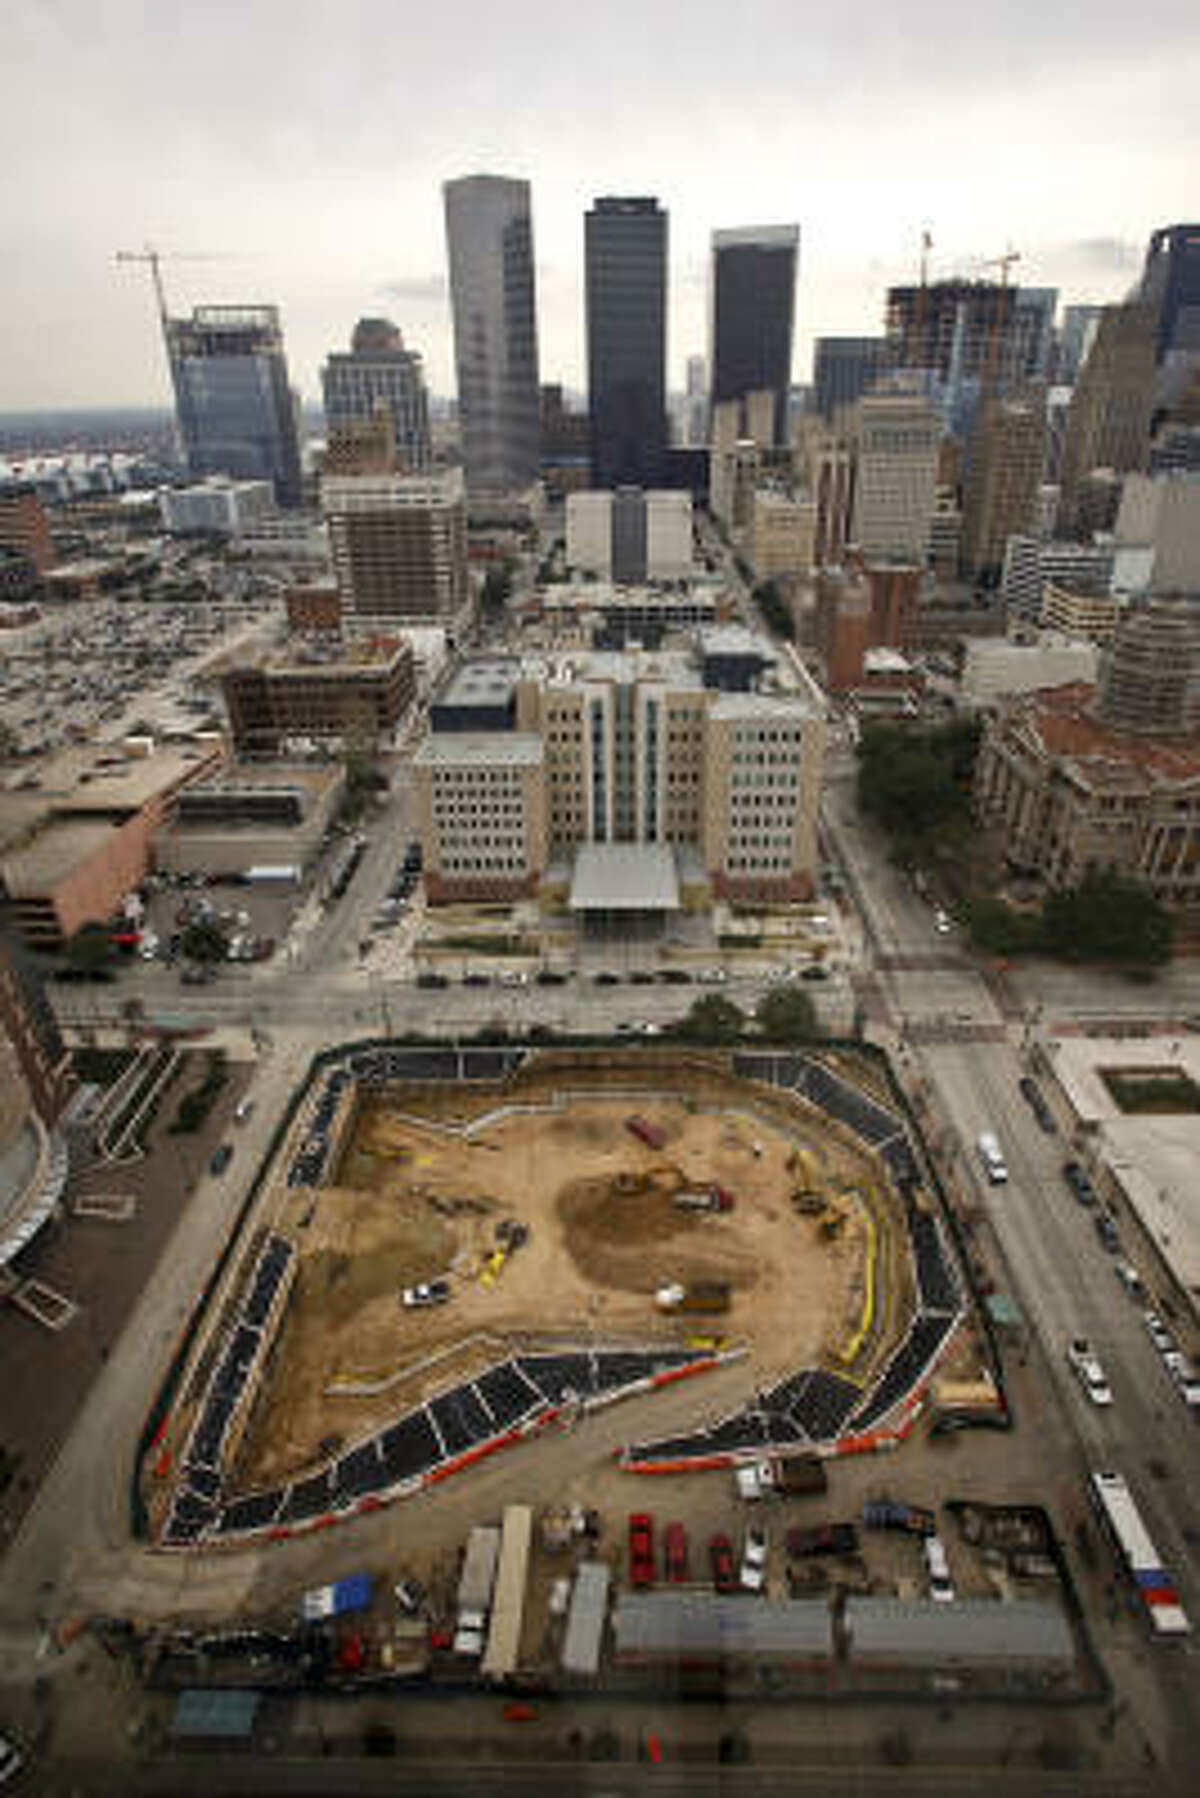 The construction site across from the Harris County Criminal Justice Center, 1201 Franklin, is representative of an ongoing trend, where surface parking lots are being replaced.